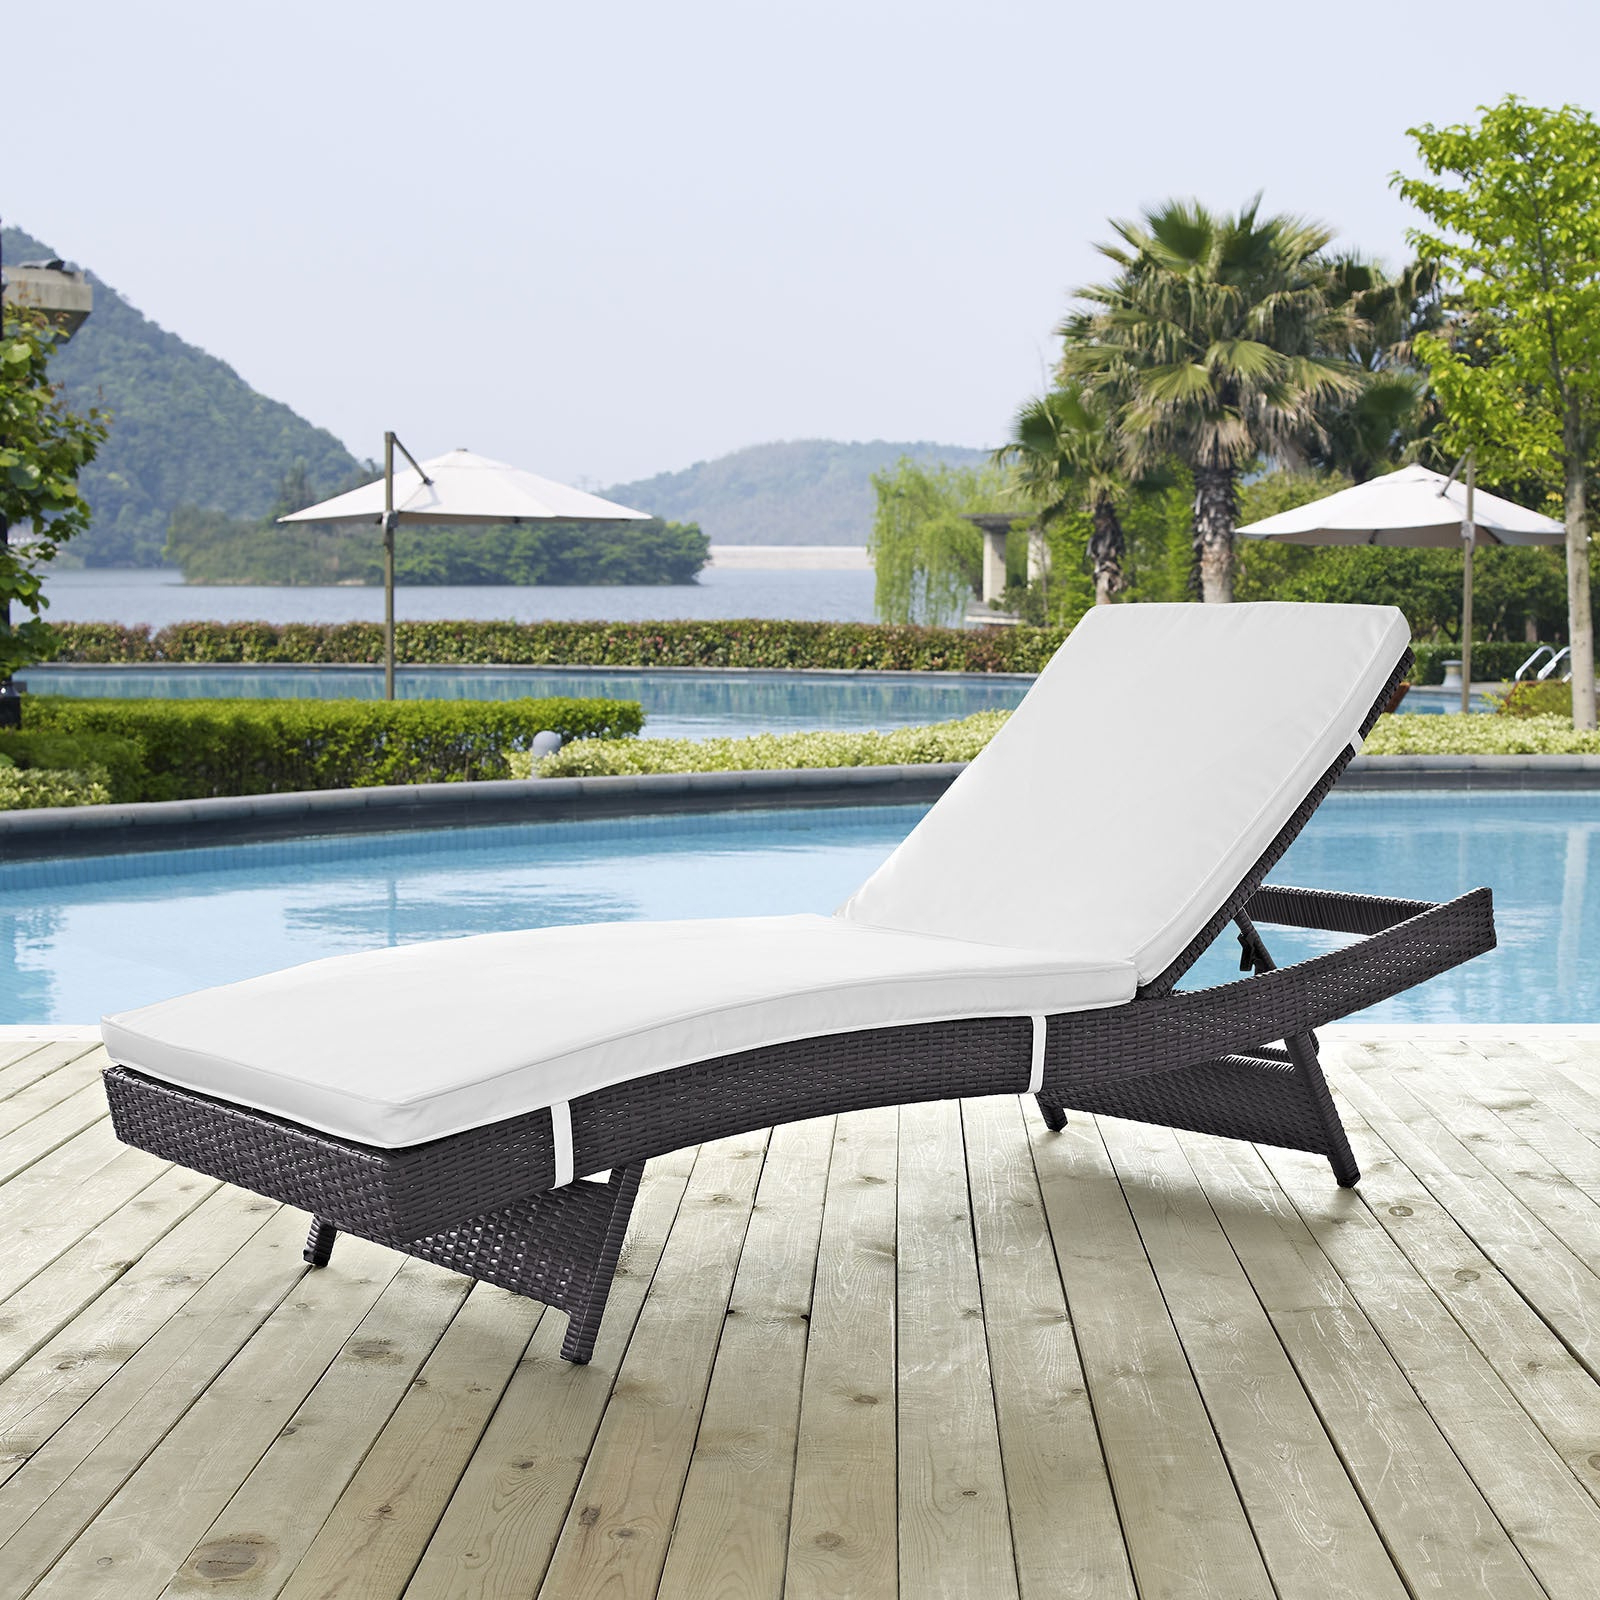 Widely Used Havenside Home Newtok Mesh Reclining Patio Loungers Pertaining To Buy Synthetic Outdoor Chaise Lounges Online At Overstock (View 9 of 25)